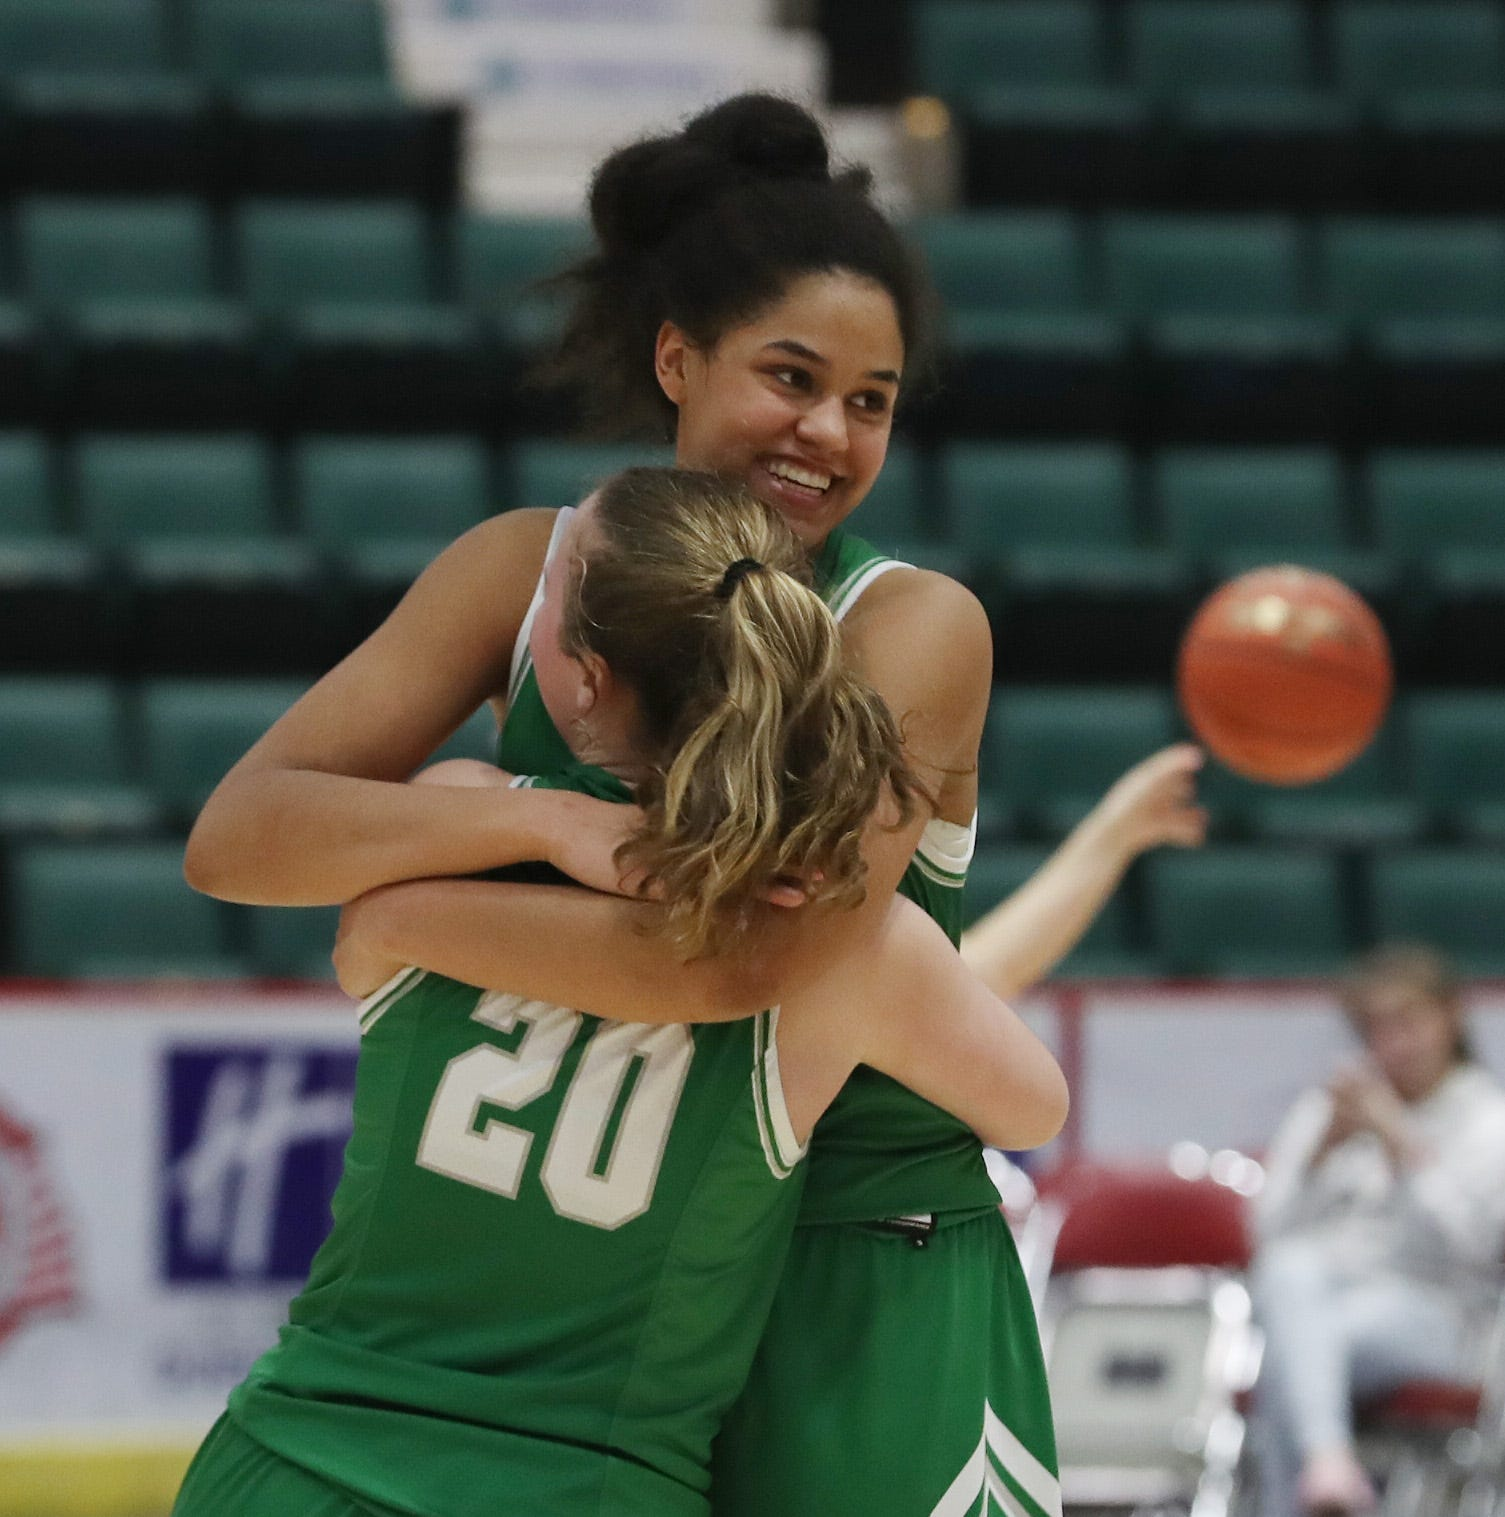 Girls basketball: Irvington holds on in nail-biting Federation championship, 47-41